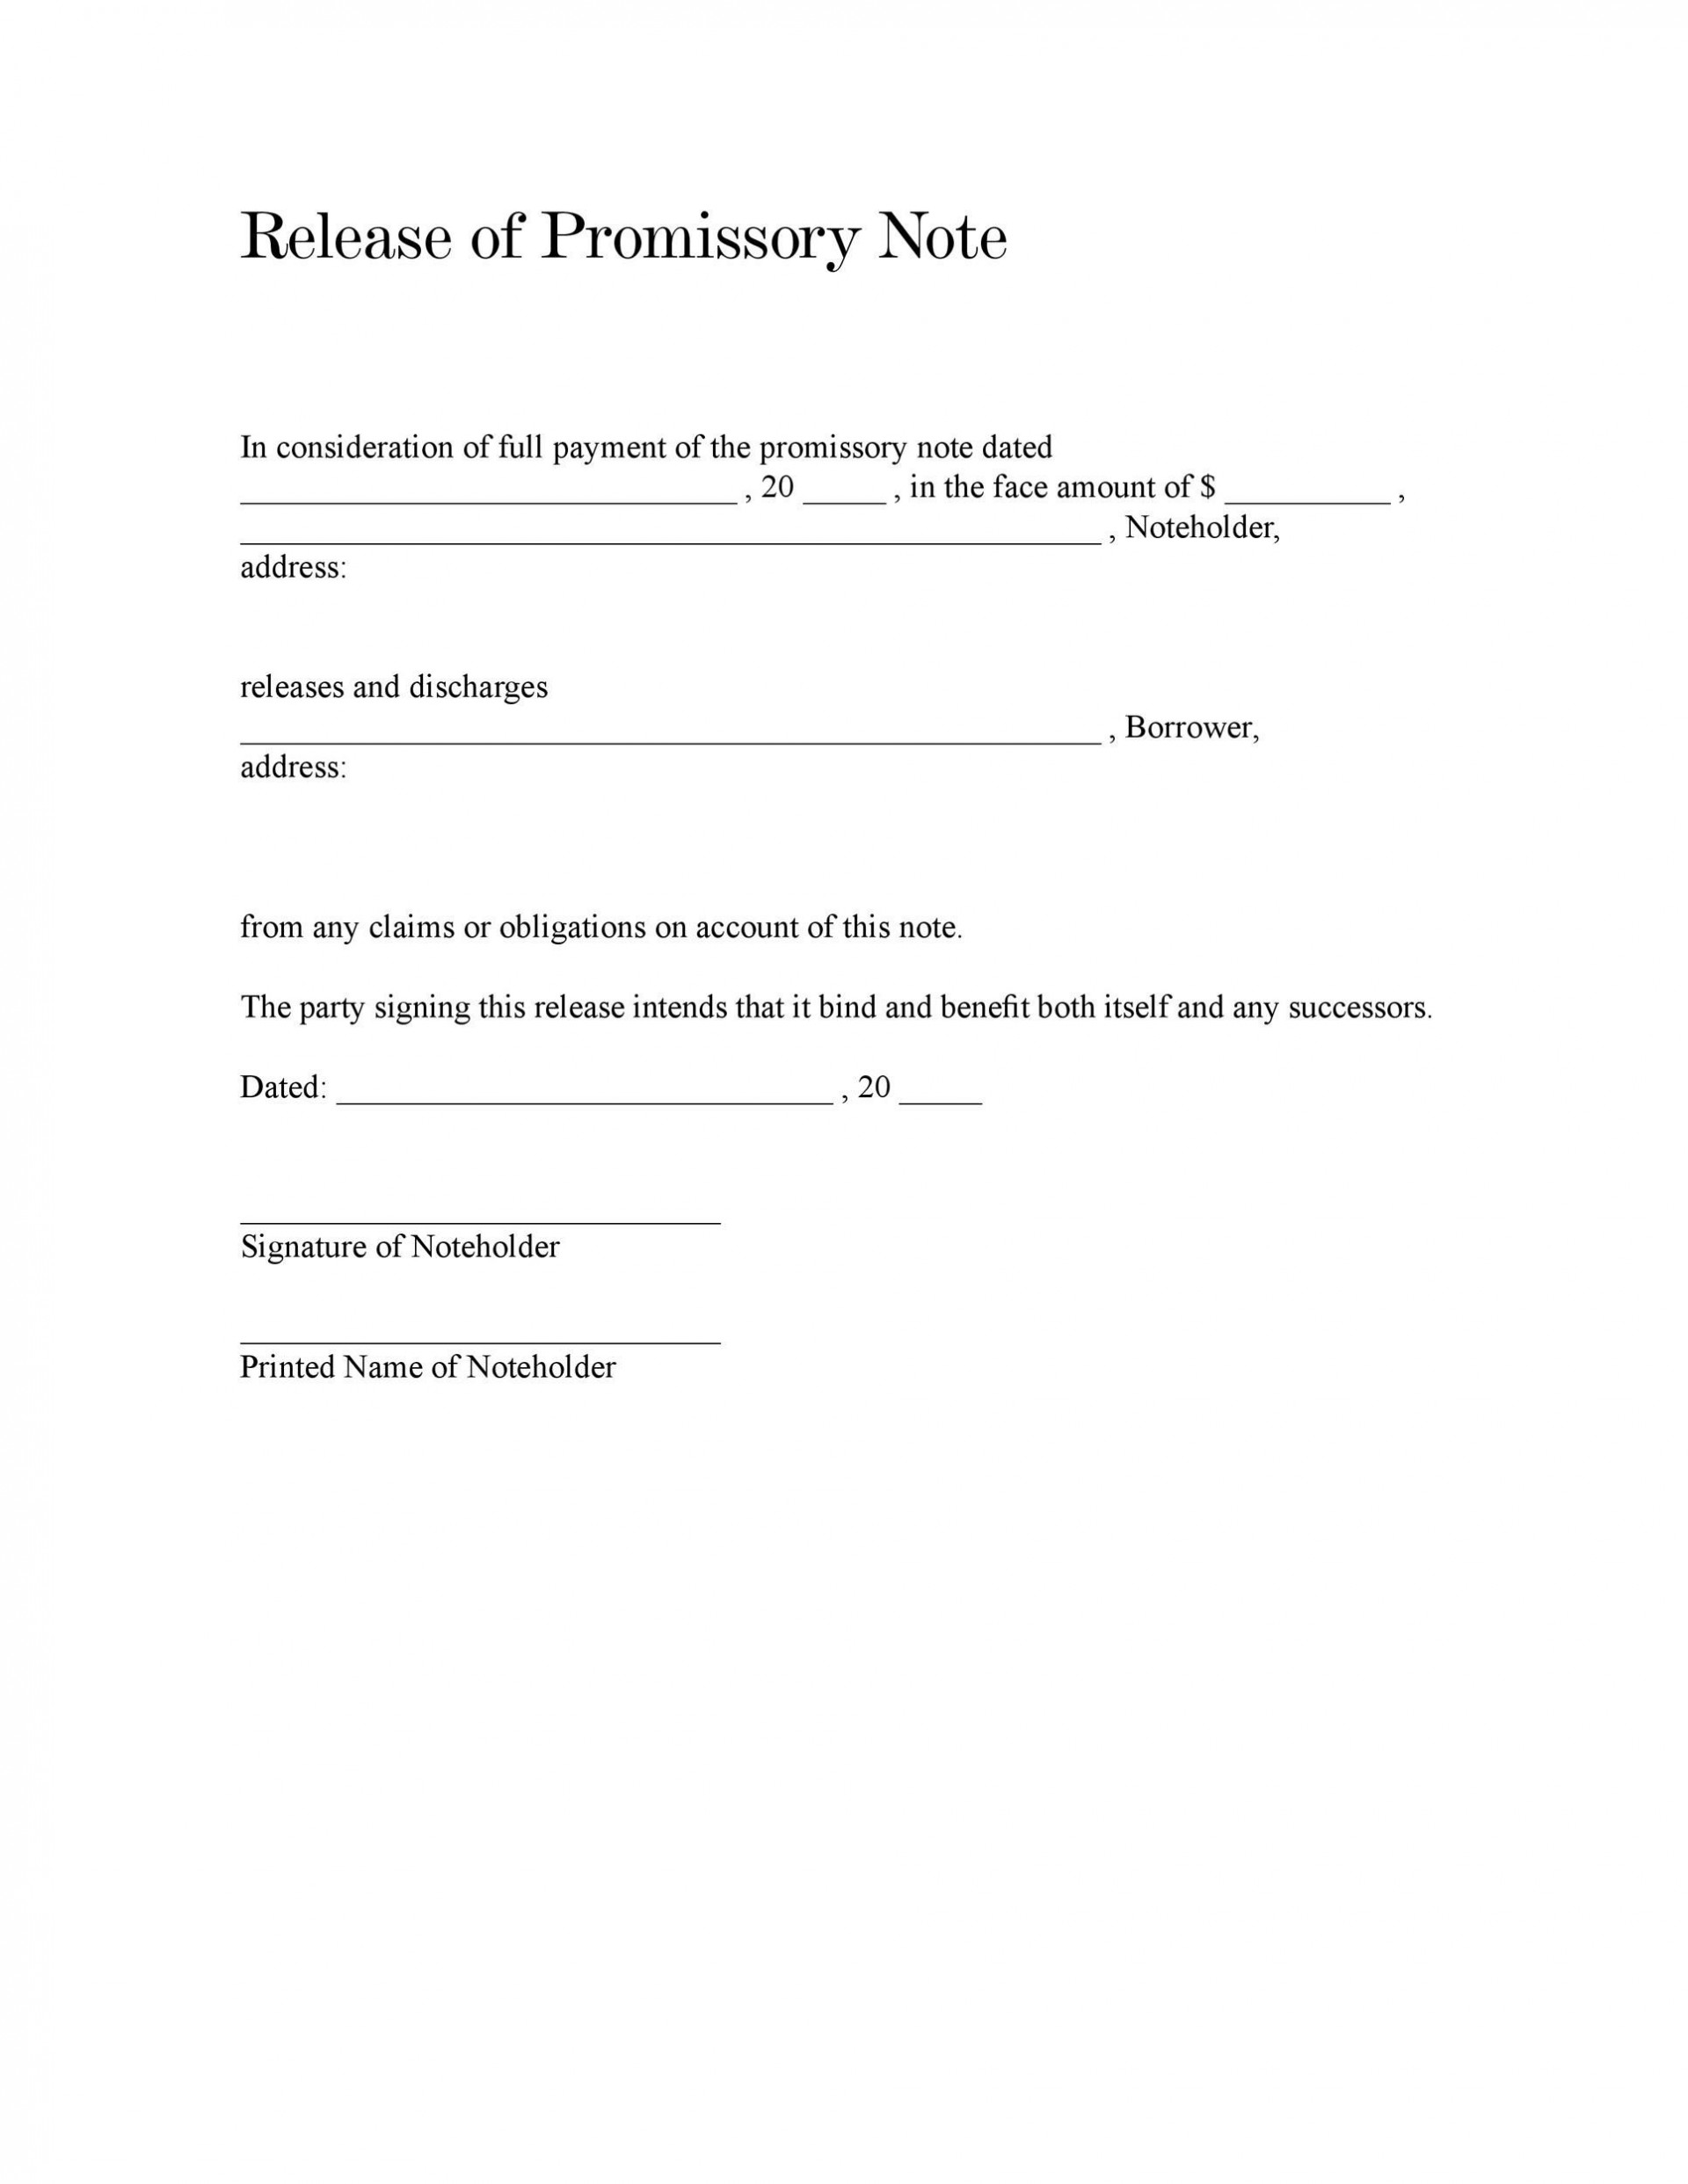 007 Formidable Blank Promissory Note Template Image  Form Free Download1920